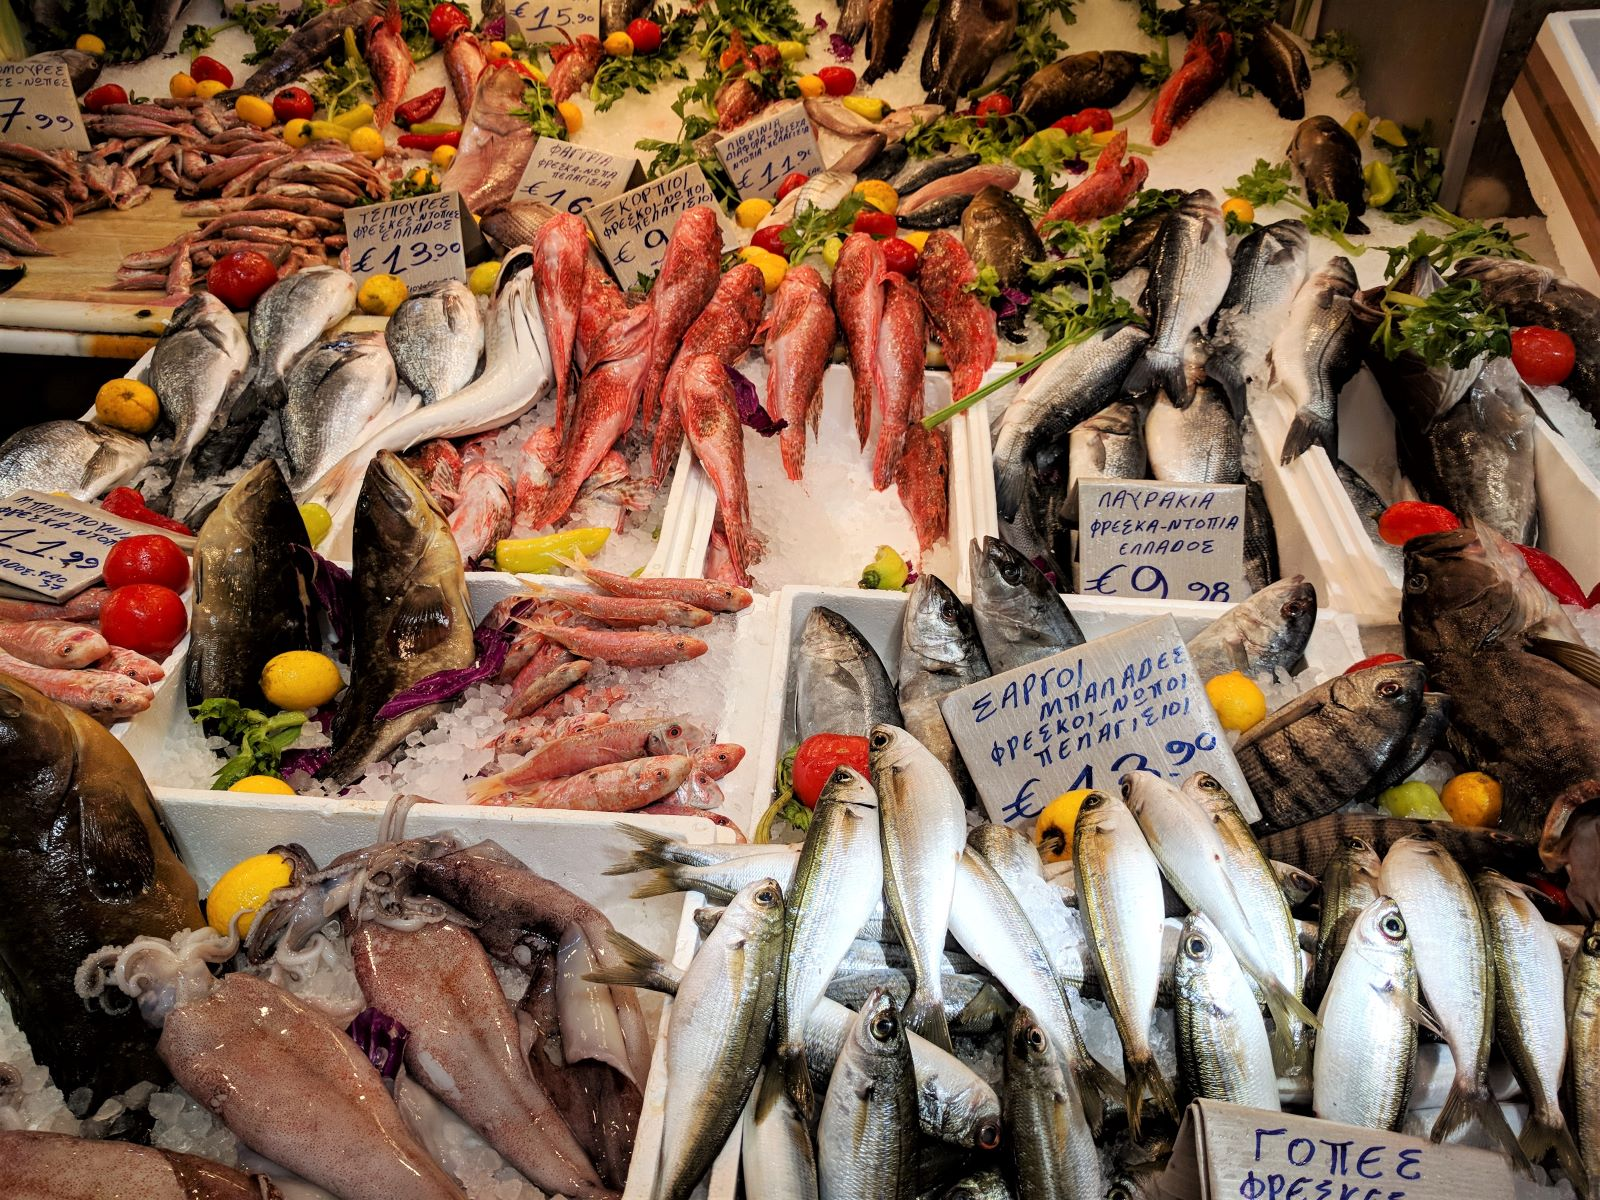 Fresh fish from the Aegean and Ionian sea are available for purchase inside the Varvakeios market in Athens.